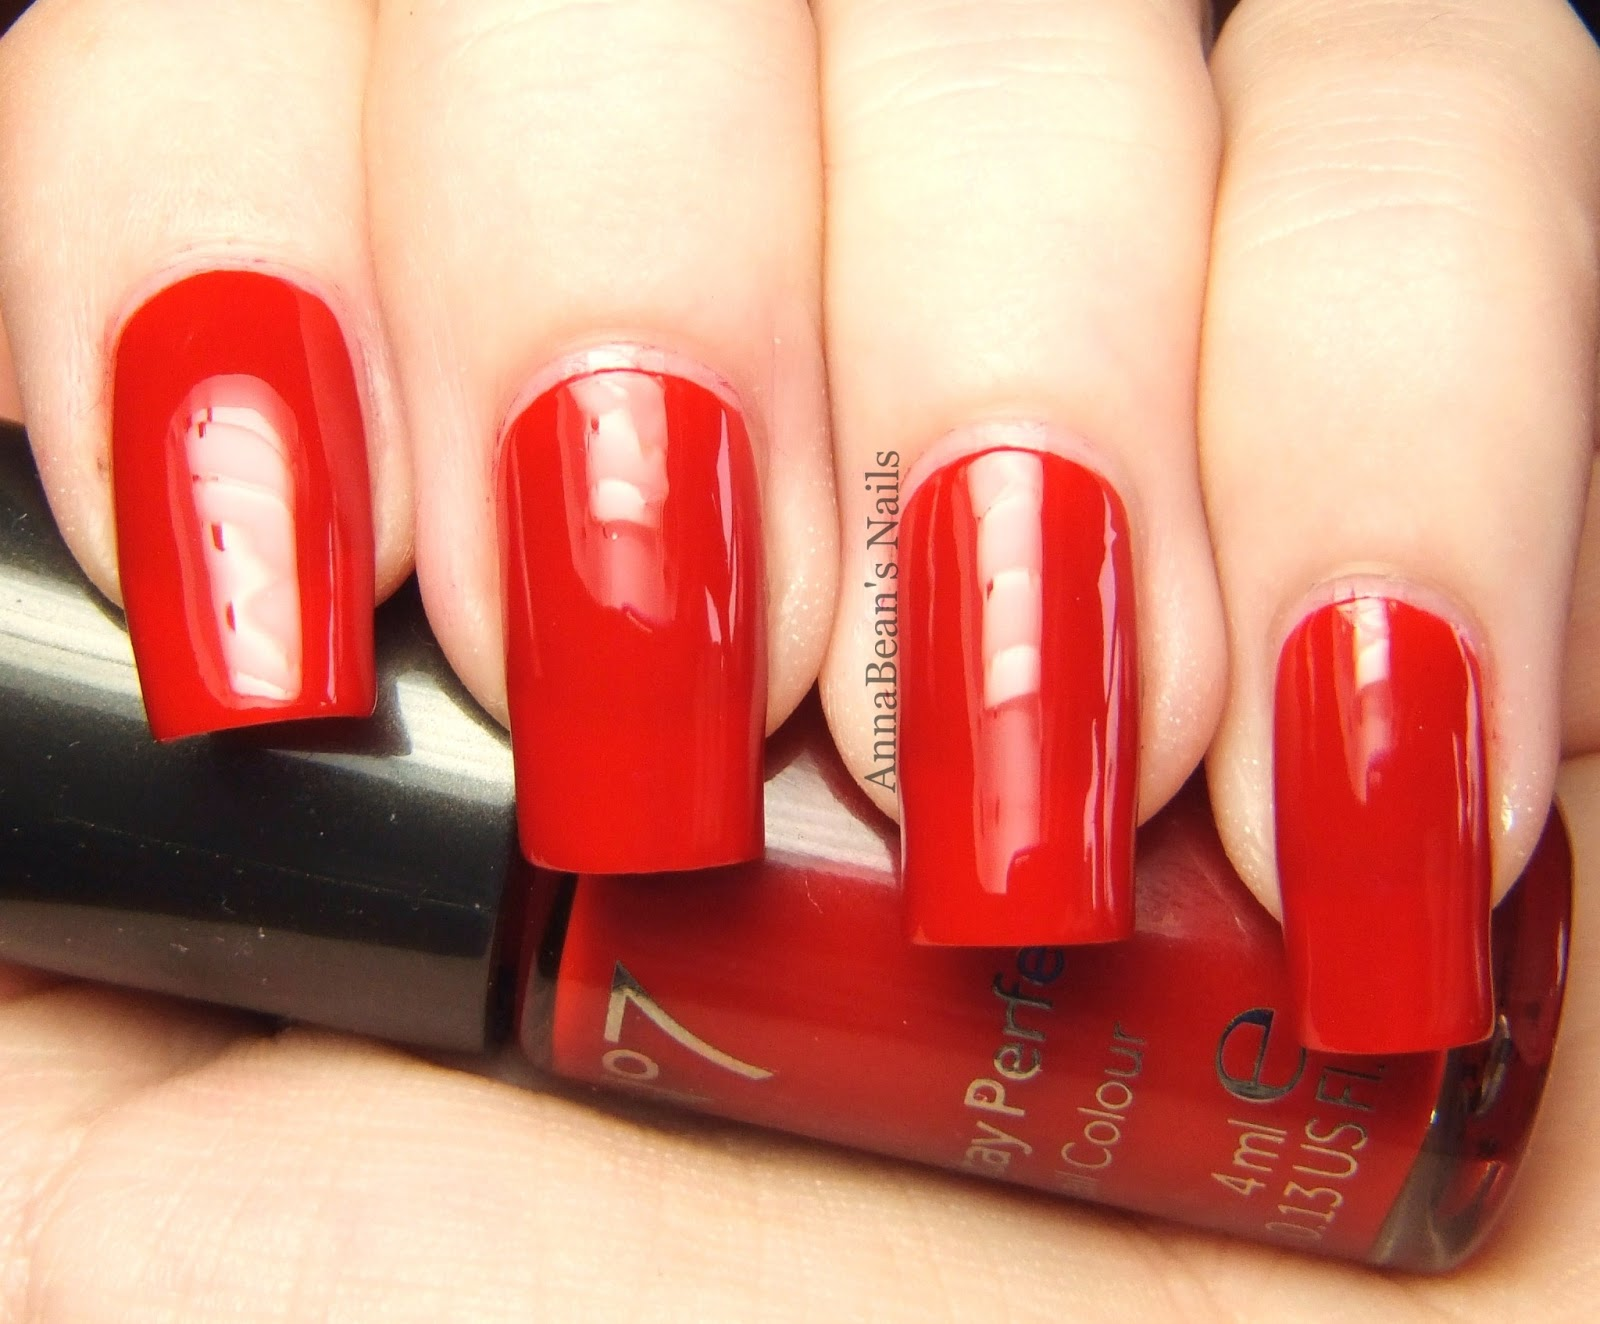 AnnaBean\'s Nails: No.7 \